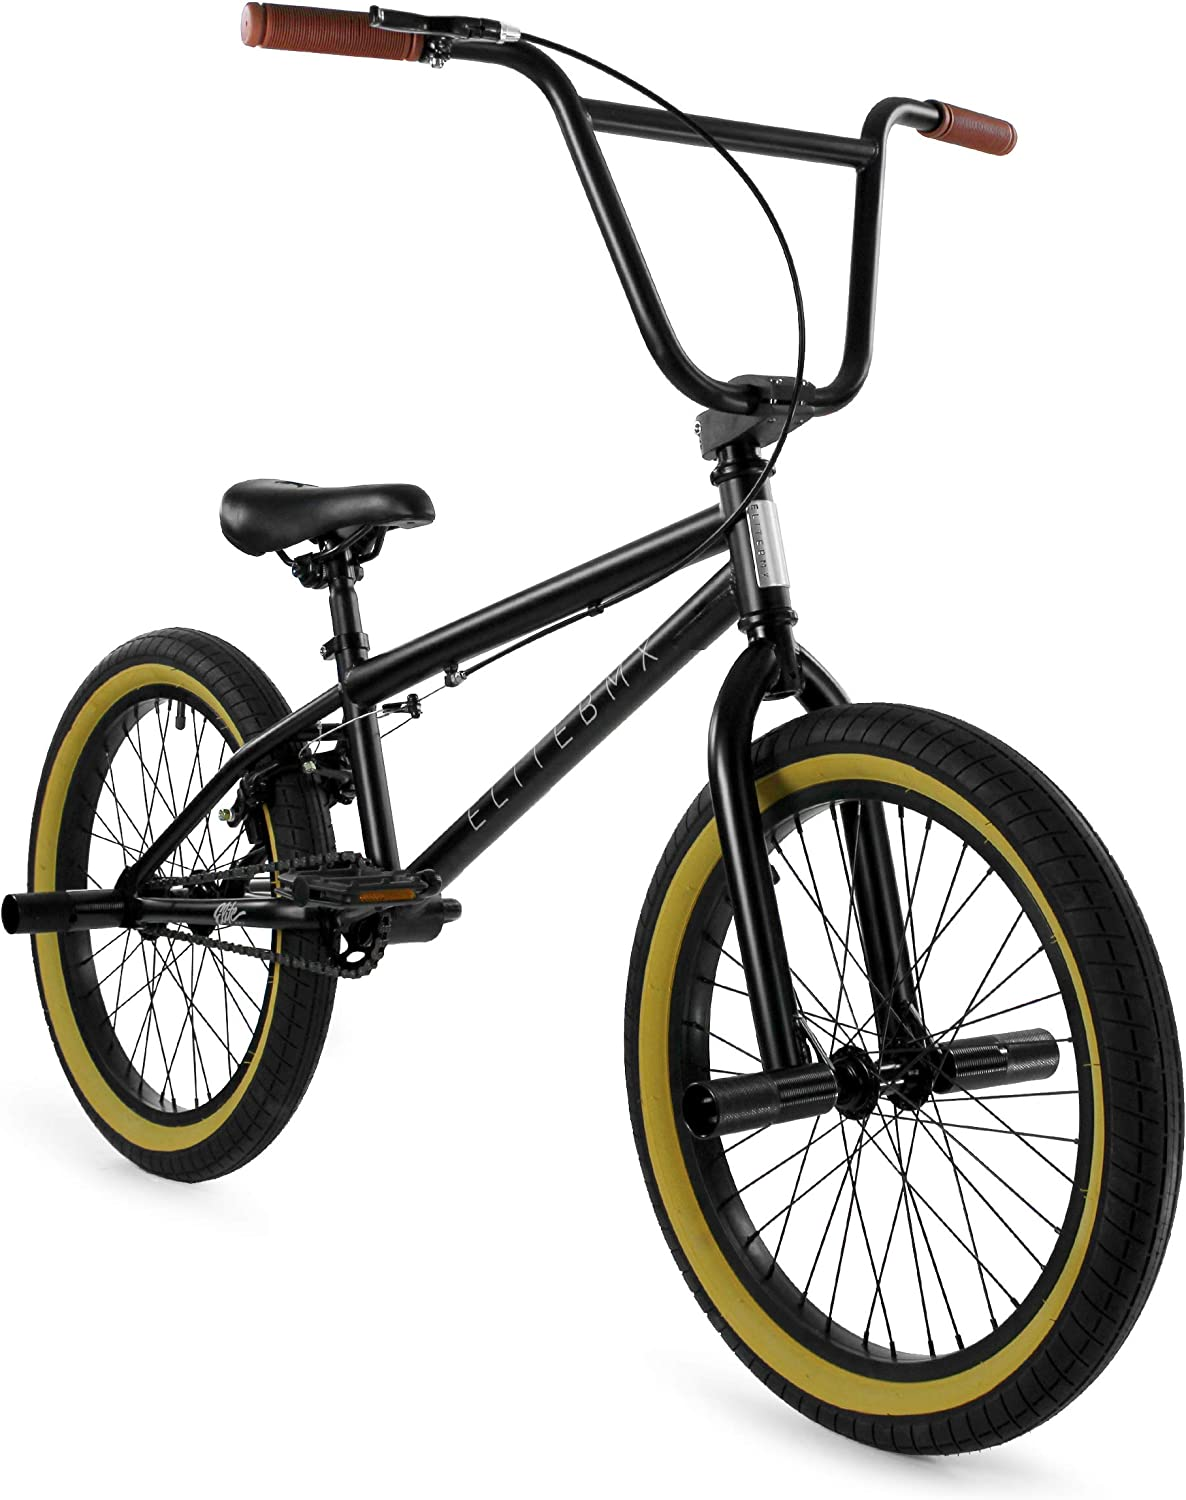 "Elite 20/"" BMX CMNDR Bicycle Freestyle Bike 3 Piece Crank Combat CAMO NEW"